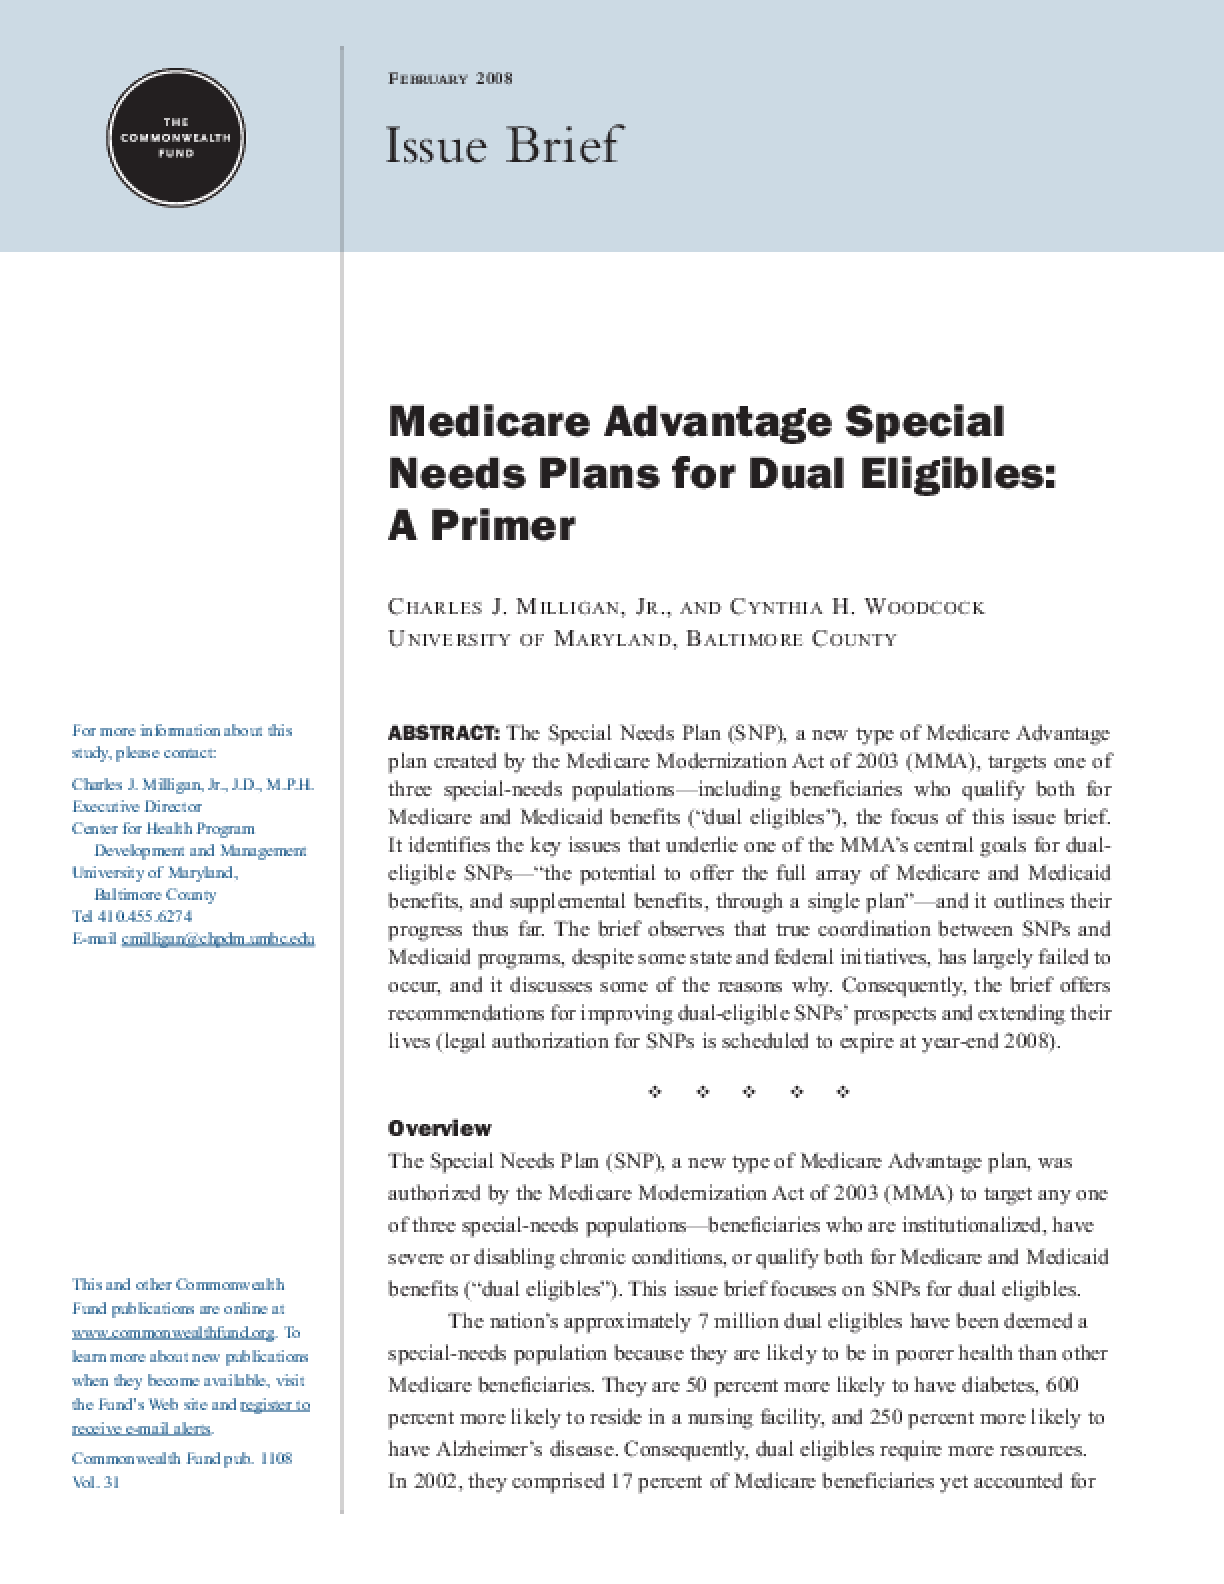 Medicare Advantage Special Needs Plans for Dual Eligibles: A Primer